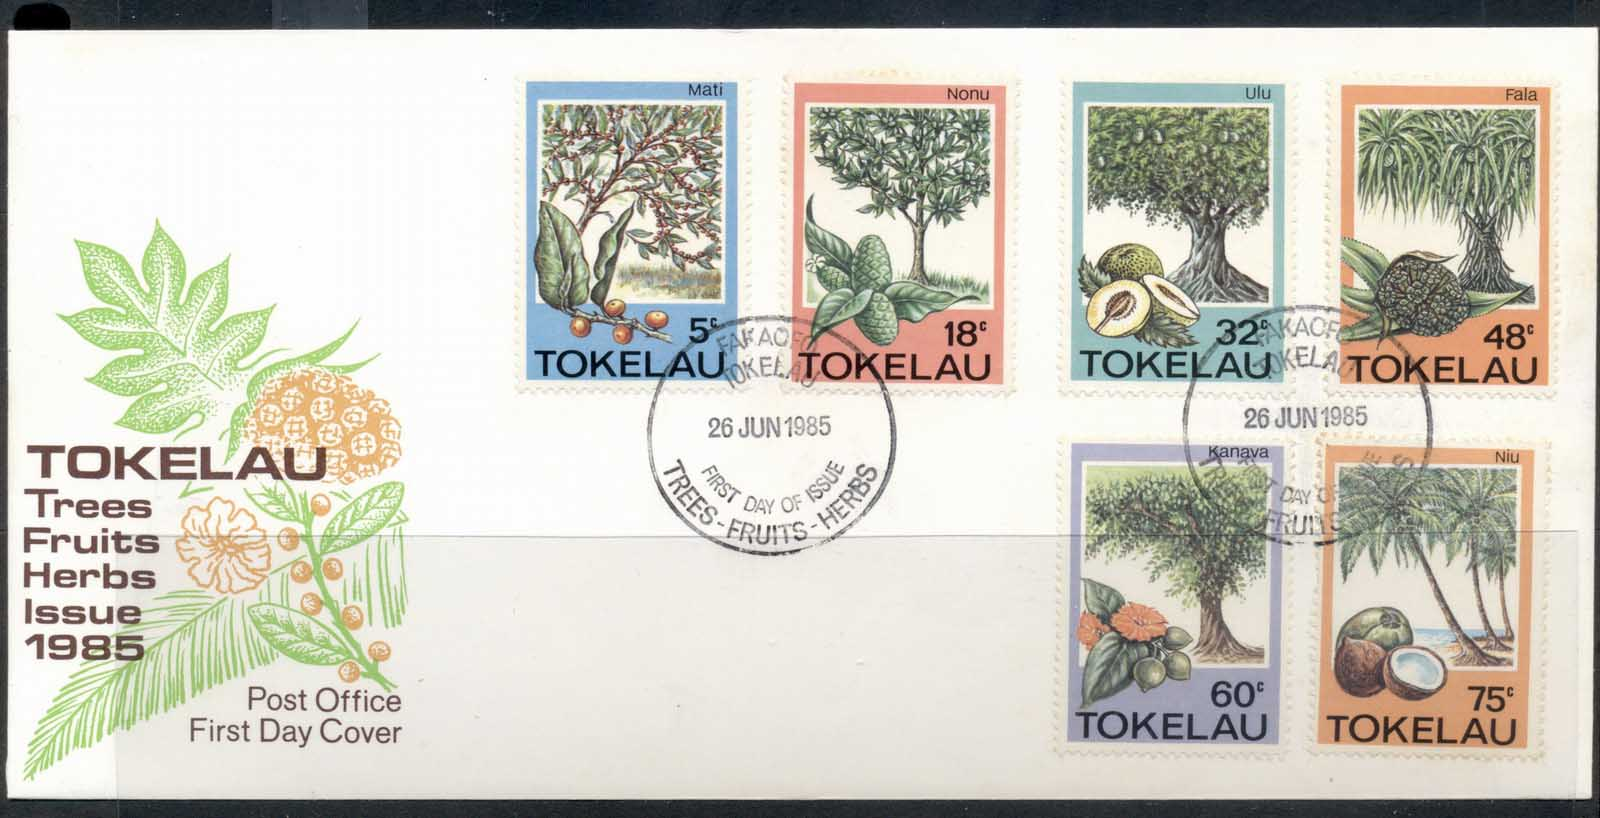 Tokelau 1985 Trees, Fruit, Herbs FDC